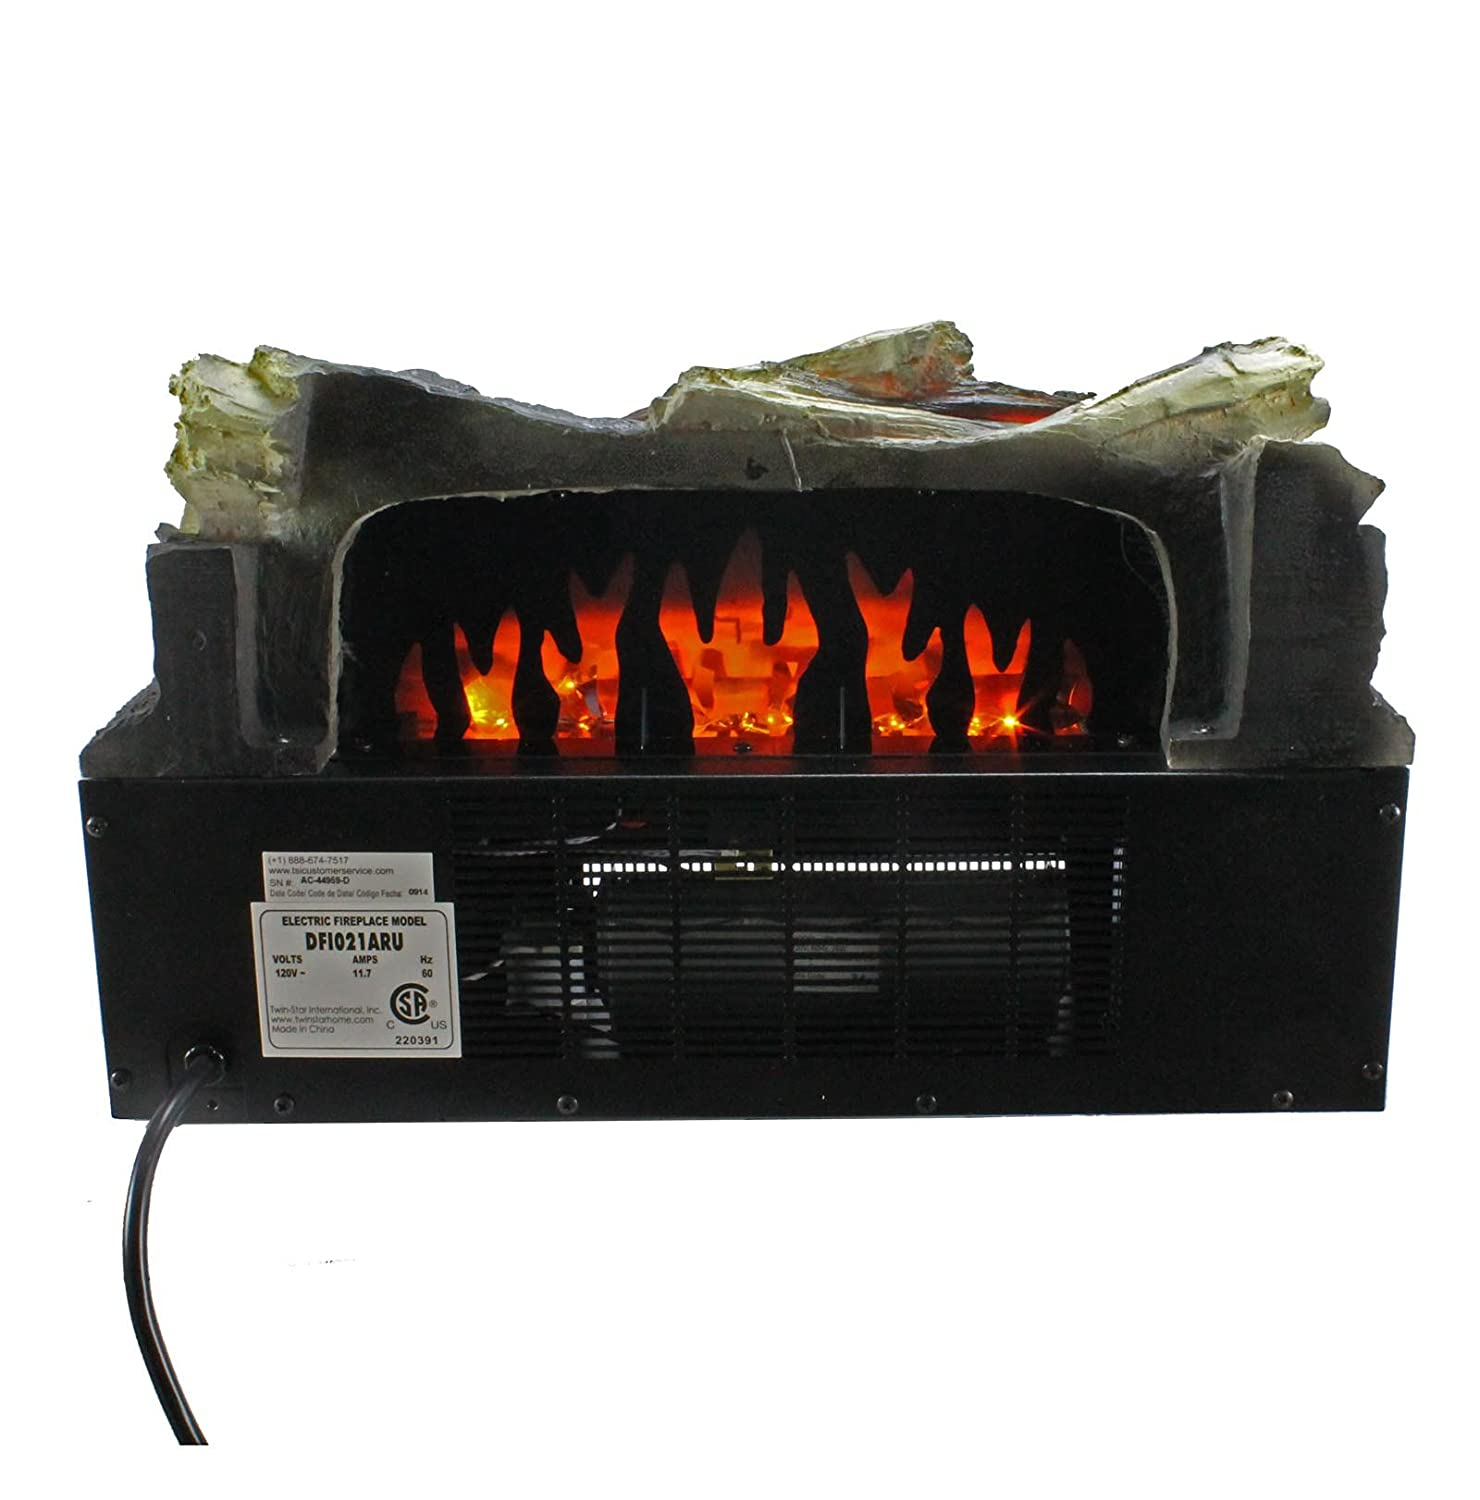 amazon com duraflame dfi021aru 03 electric log set heater with